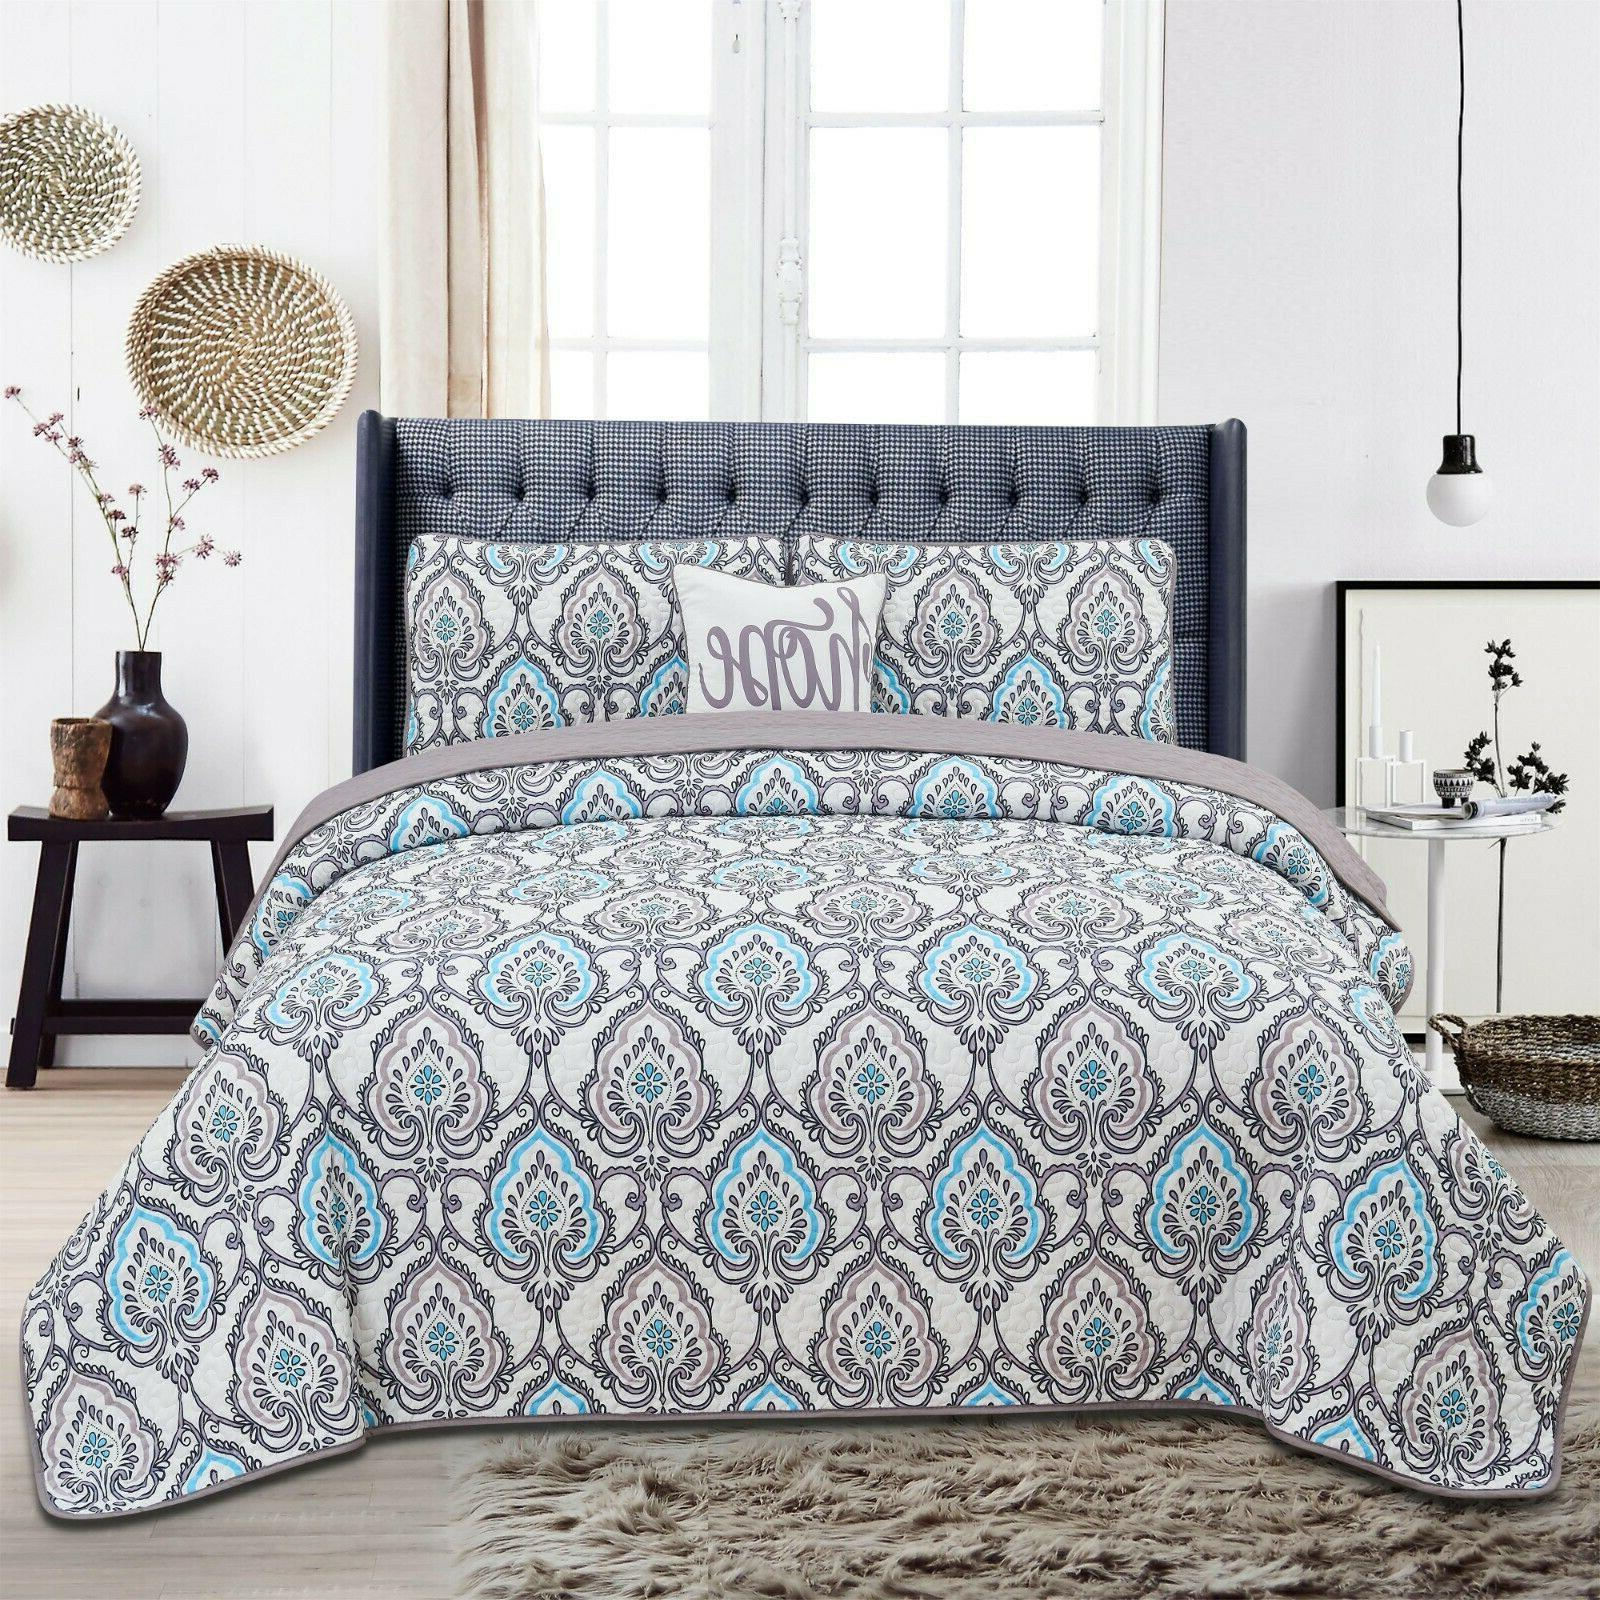 Queen Quilt Bedding Set Printed Pattern 4 Piece Quilt Set Ki